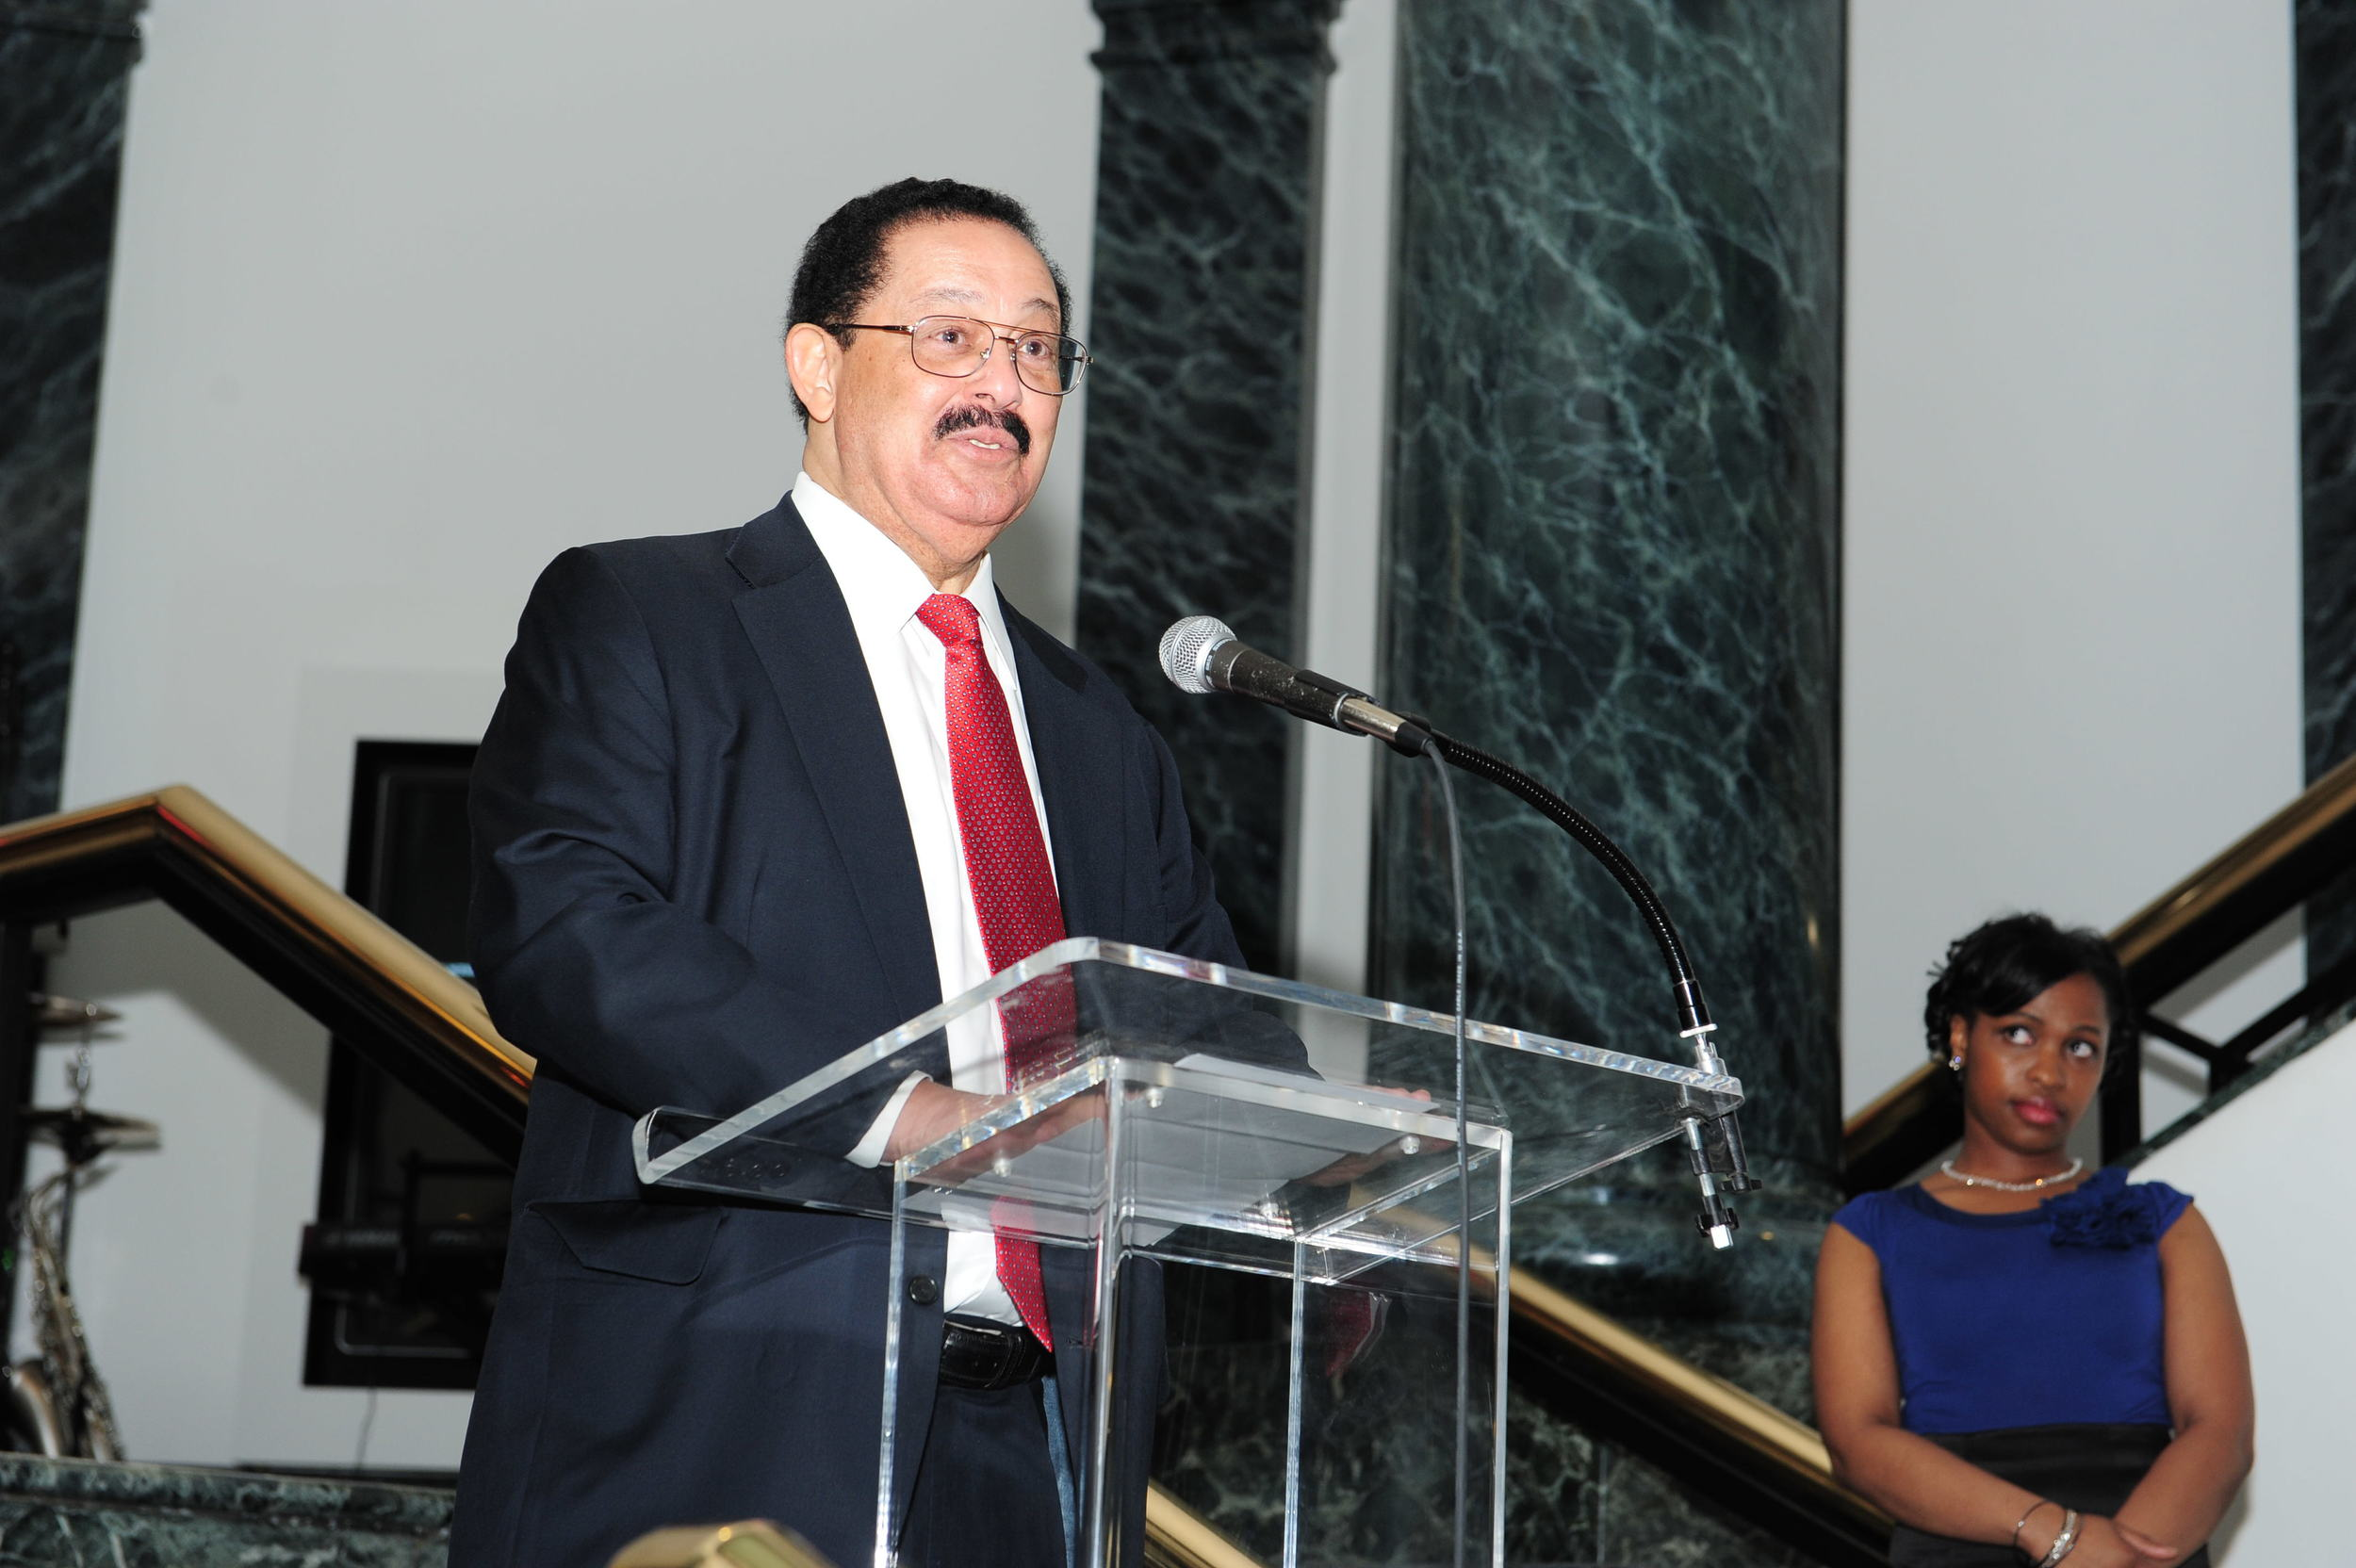 35th Annual Evening with NABA Scholarship & Awards Reception